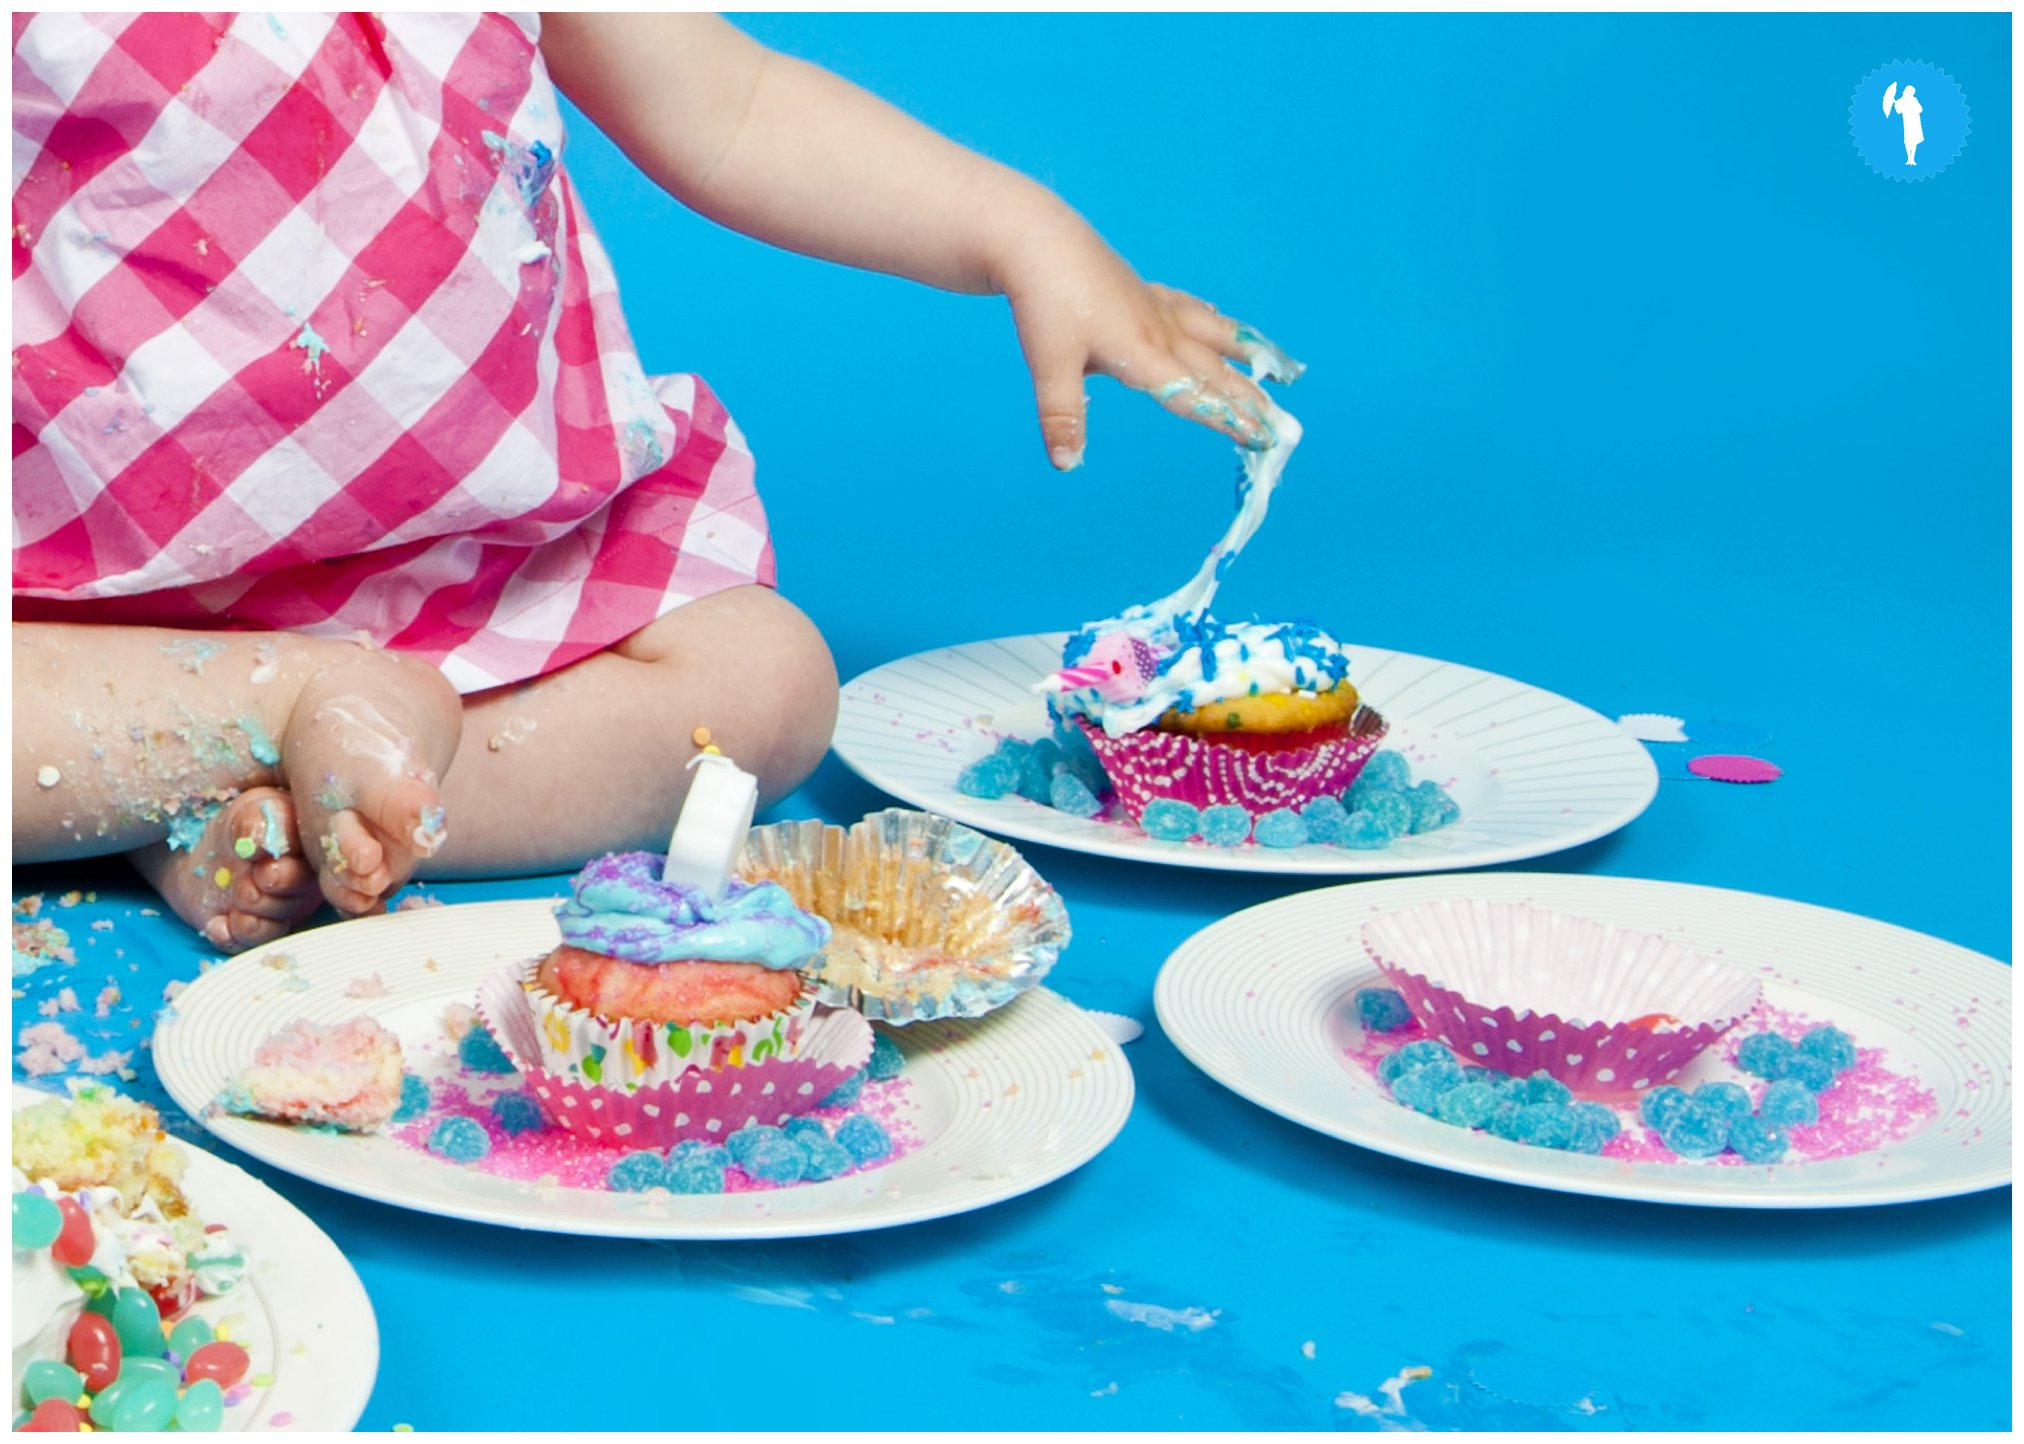 Cake smash photography in Kitchener, Waterloo, Guelph area.